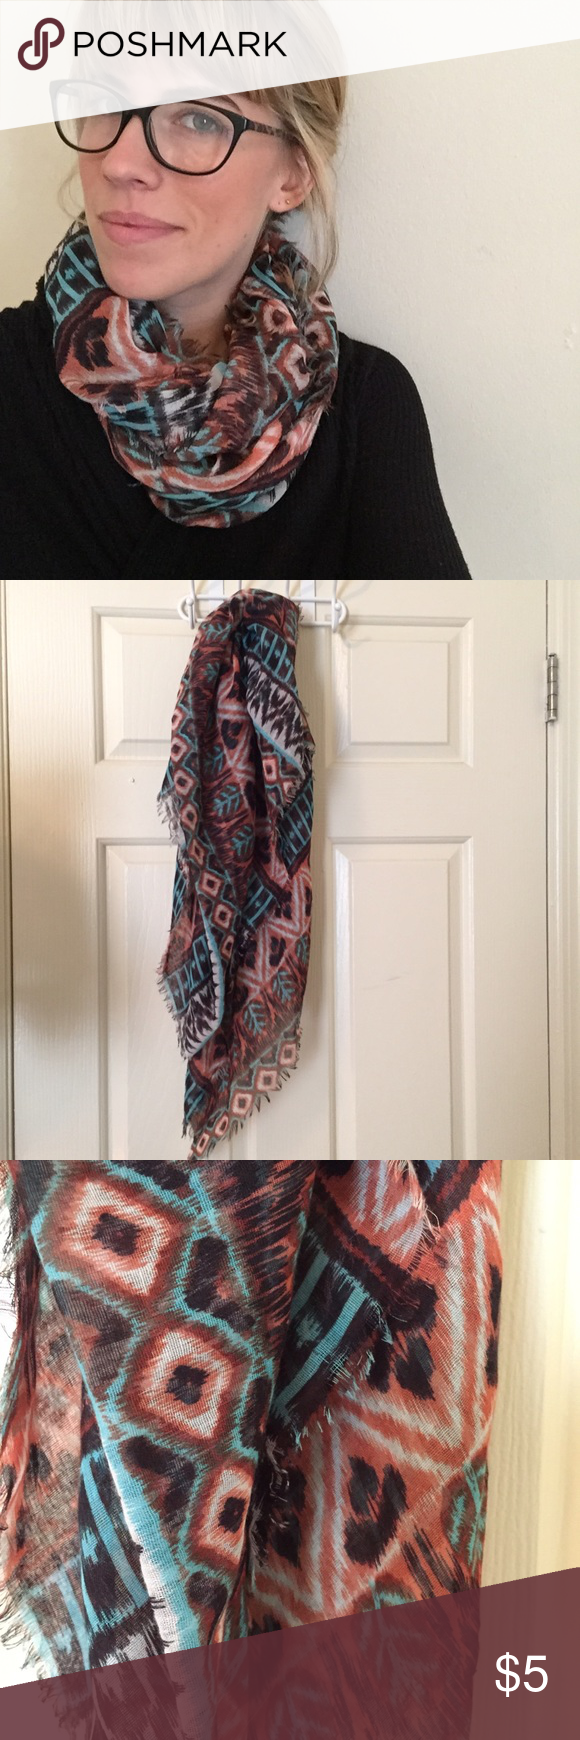 Patterned scarf This scarf features a tribal pattern comprised of blues and reds on a black background. It adds a splash of color to any neutral look! Rue 21 Accessories Scarves & Wraps